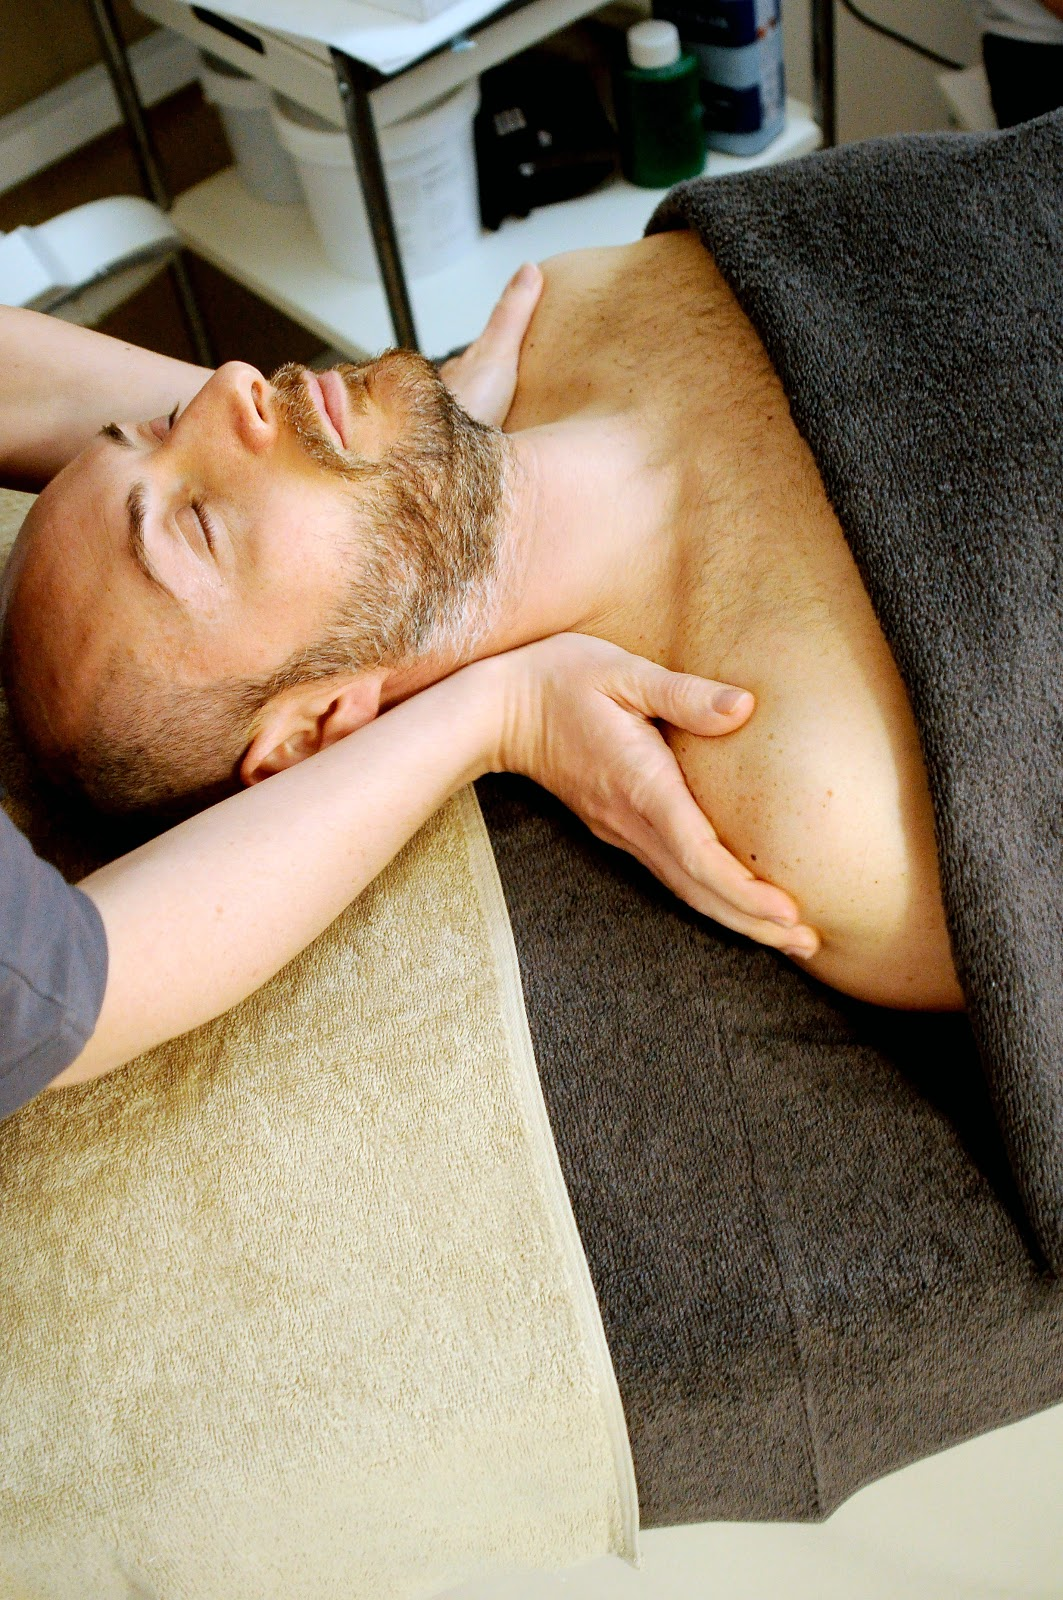 How Can Massage Therapy Help People with Autoimmune Diseases?